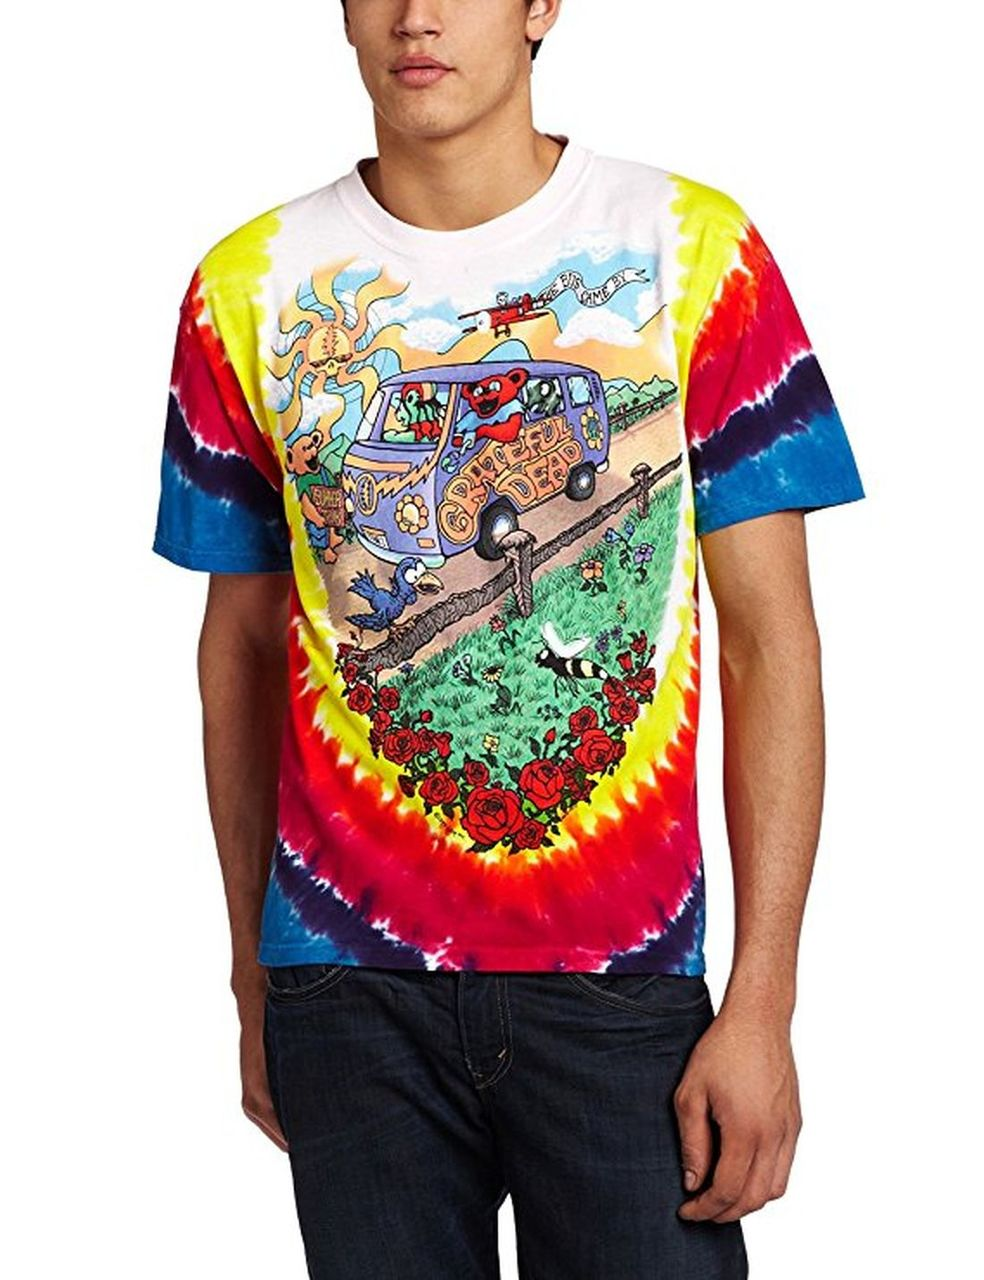 Grateful Dead Summer Tour Bus T-Shirt